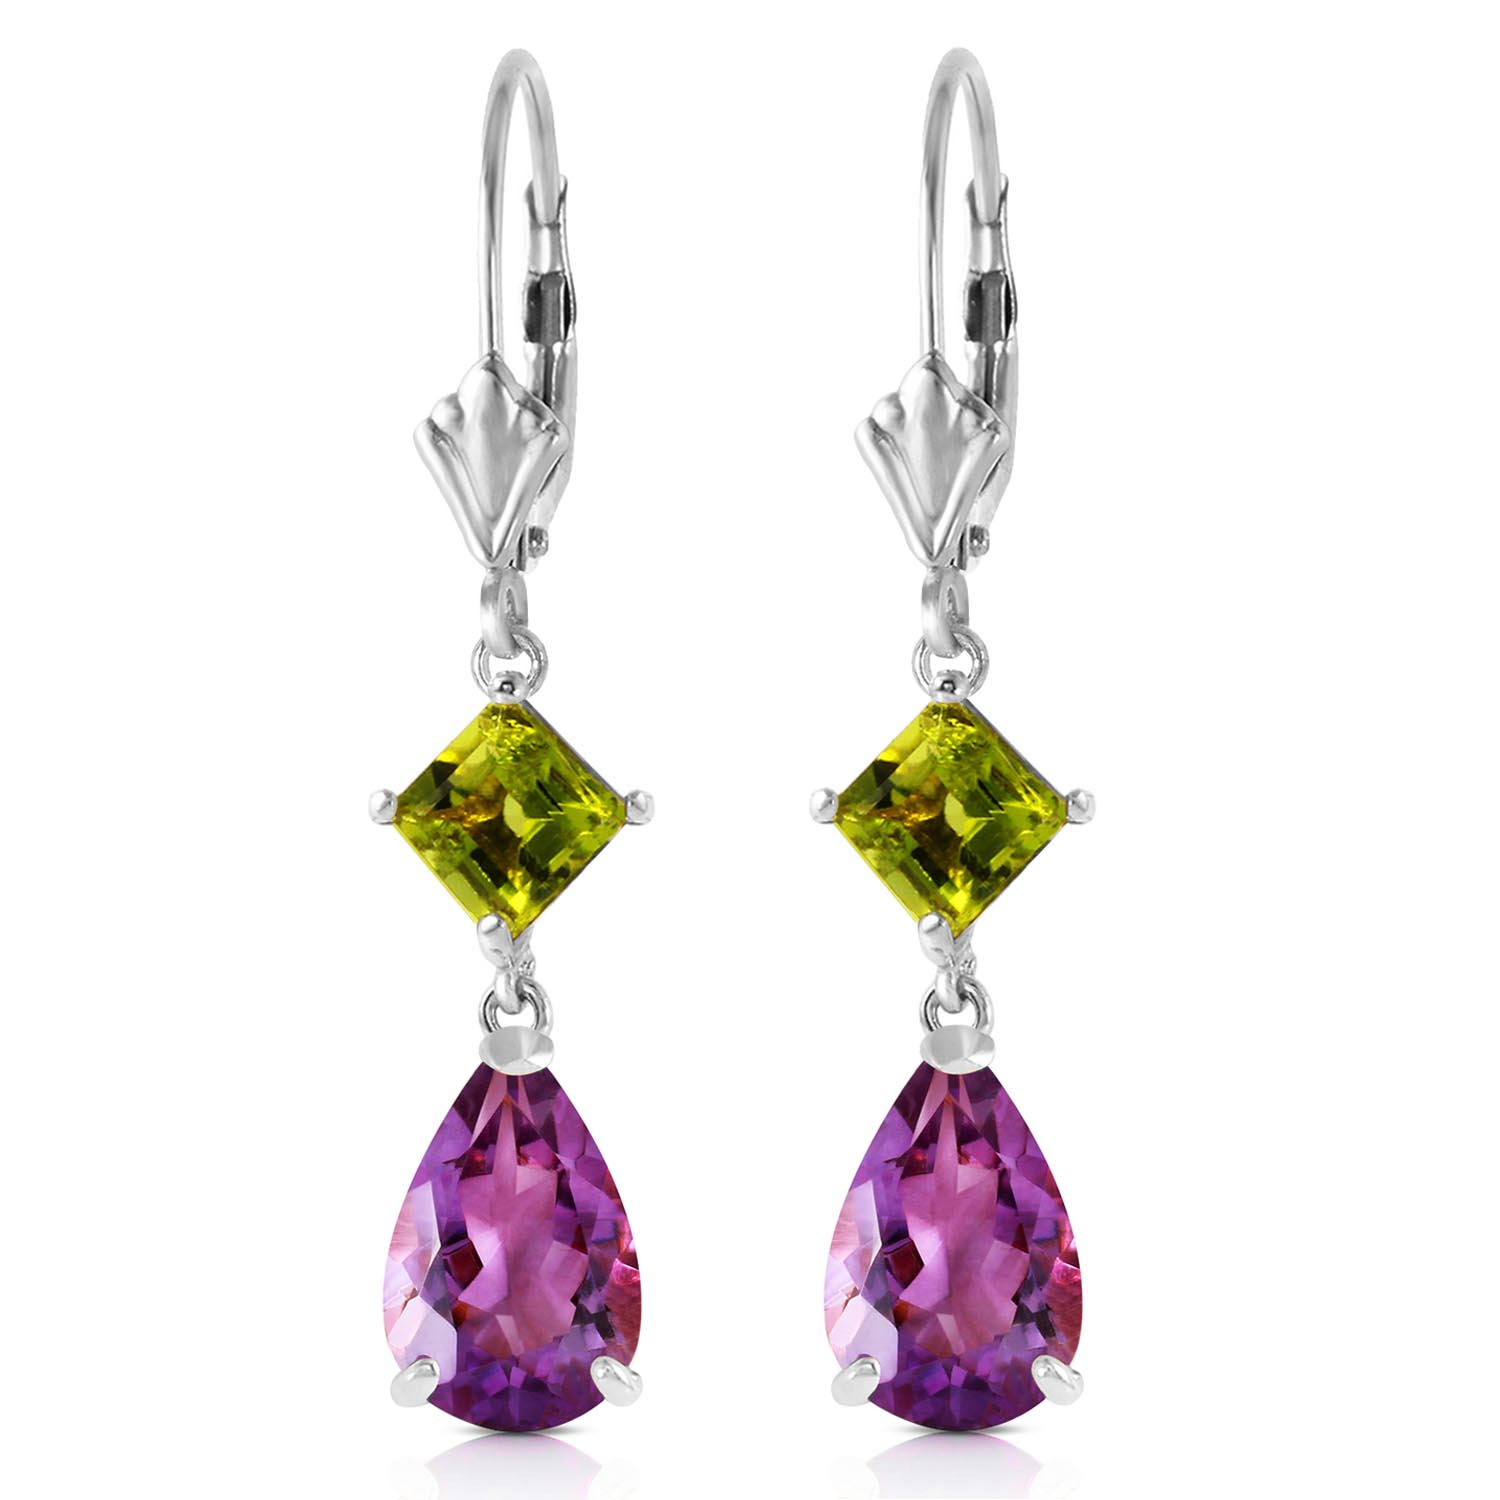 Amethyst and Peridot Droplet Earrings 4.5ctw in 9ct White Gold